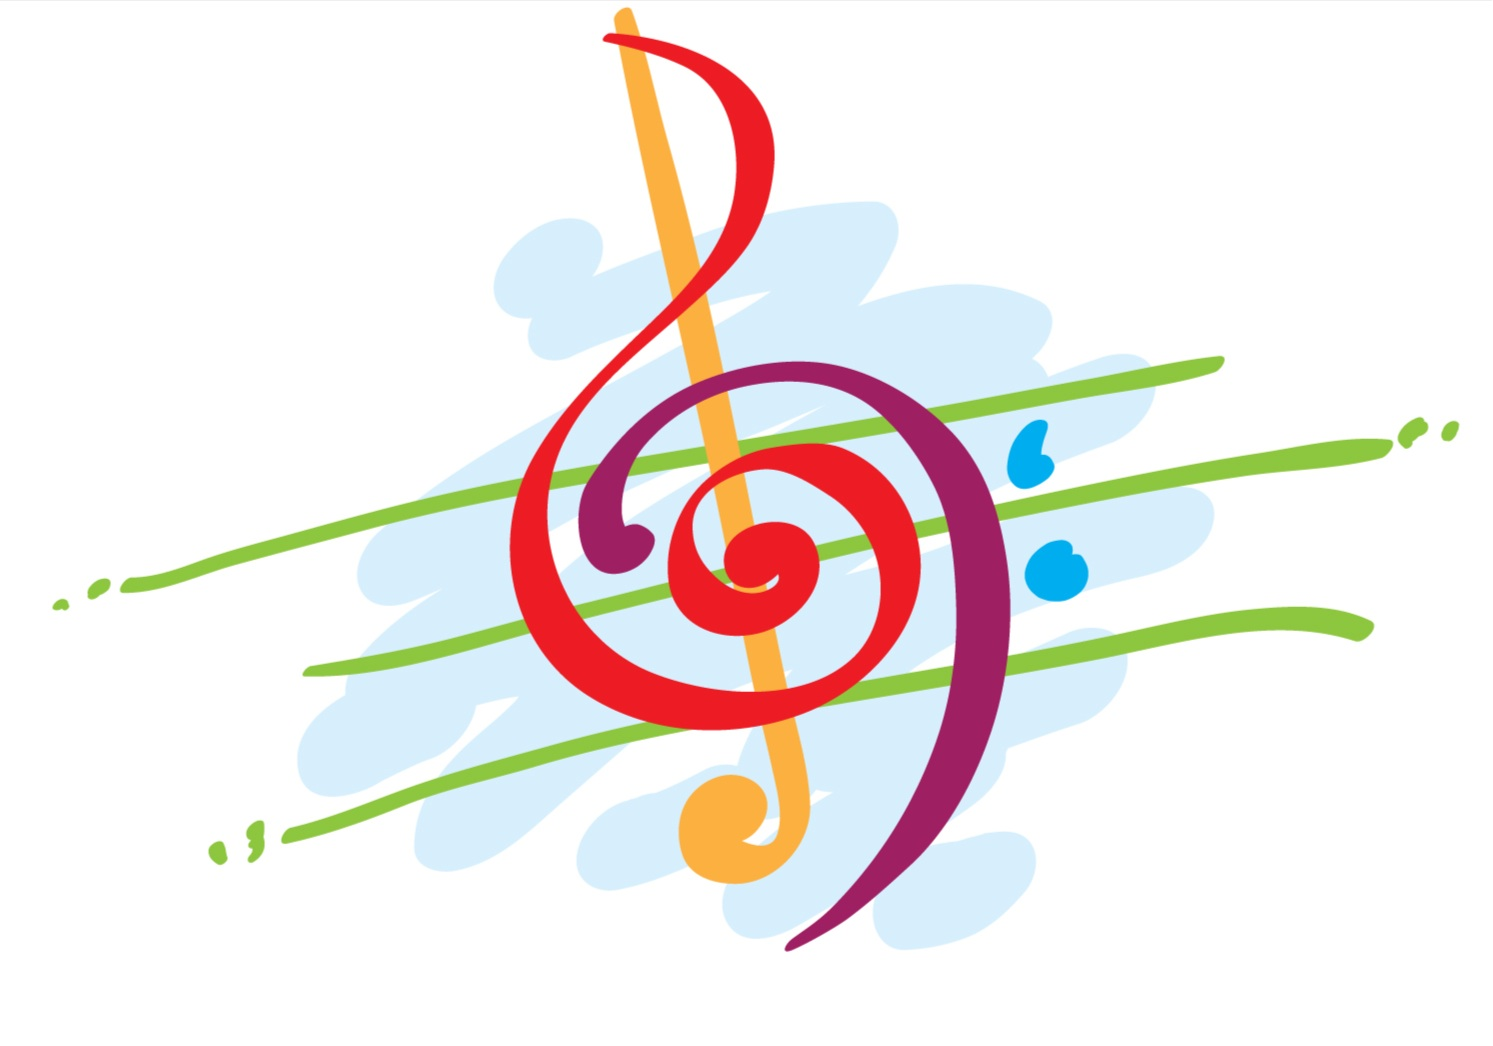 colorful-music-notes-in-a-line-tumblr_static_music_note.jpg